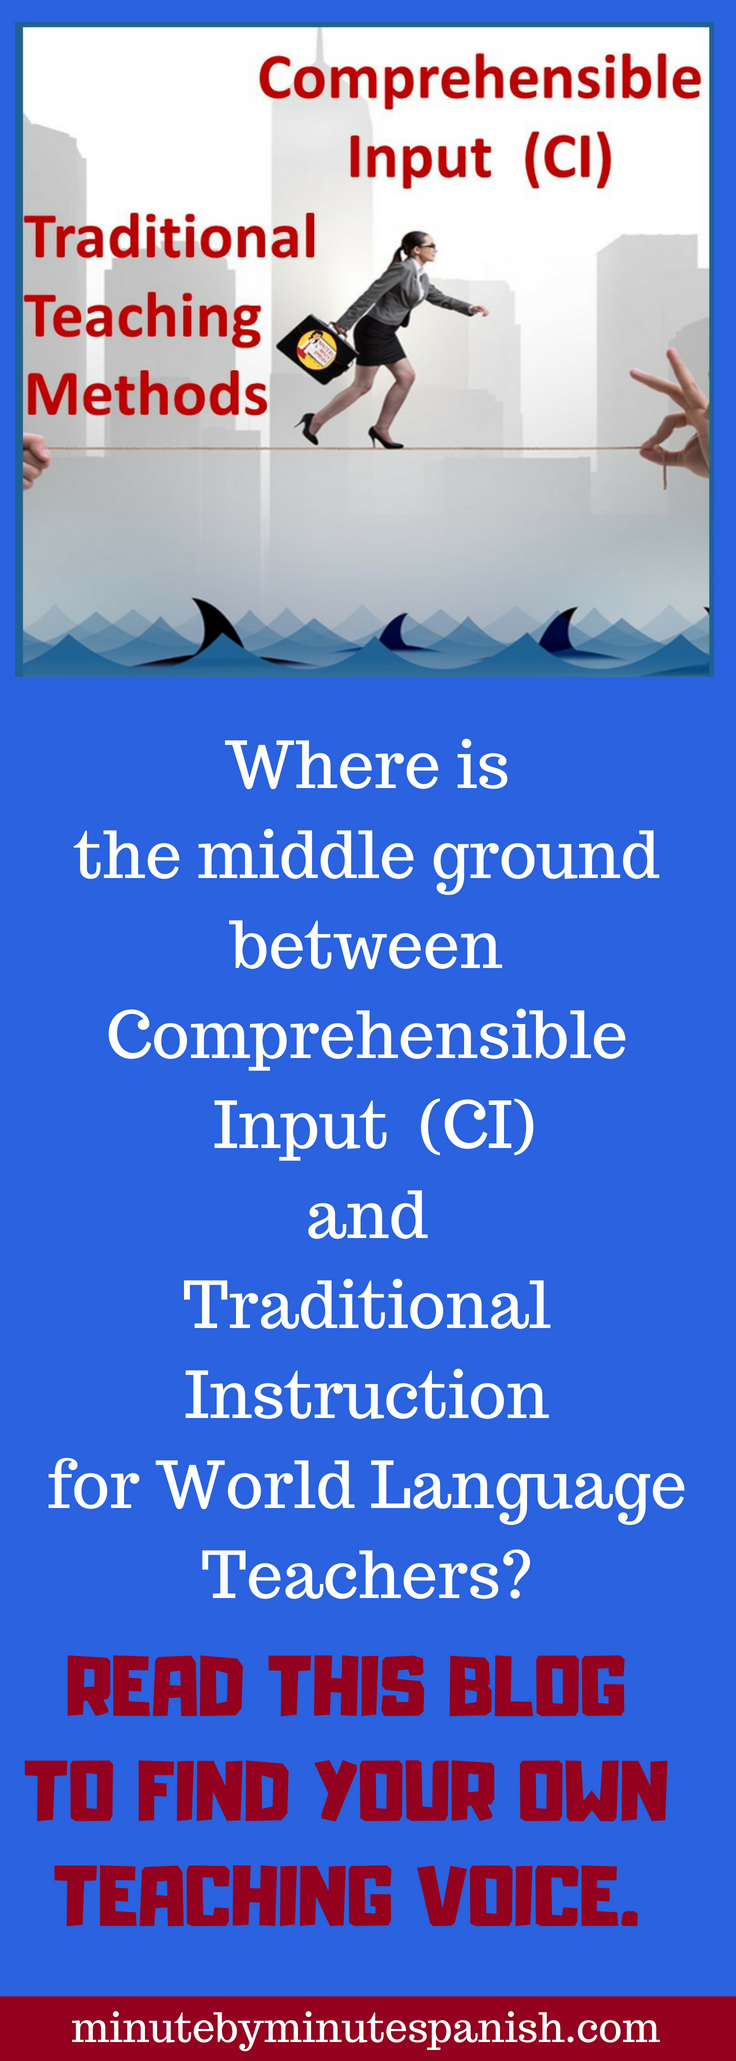 Is there a middle ground between traditional instruction and comprehensible input?